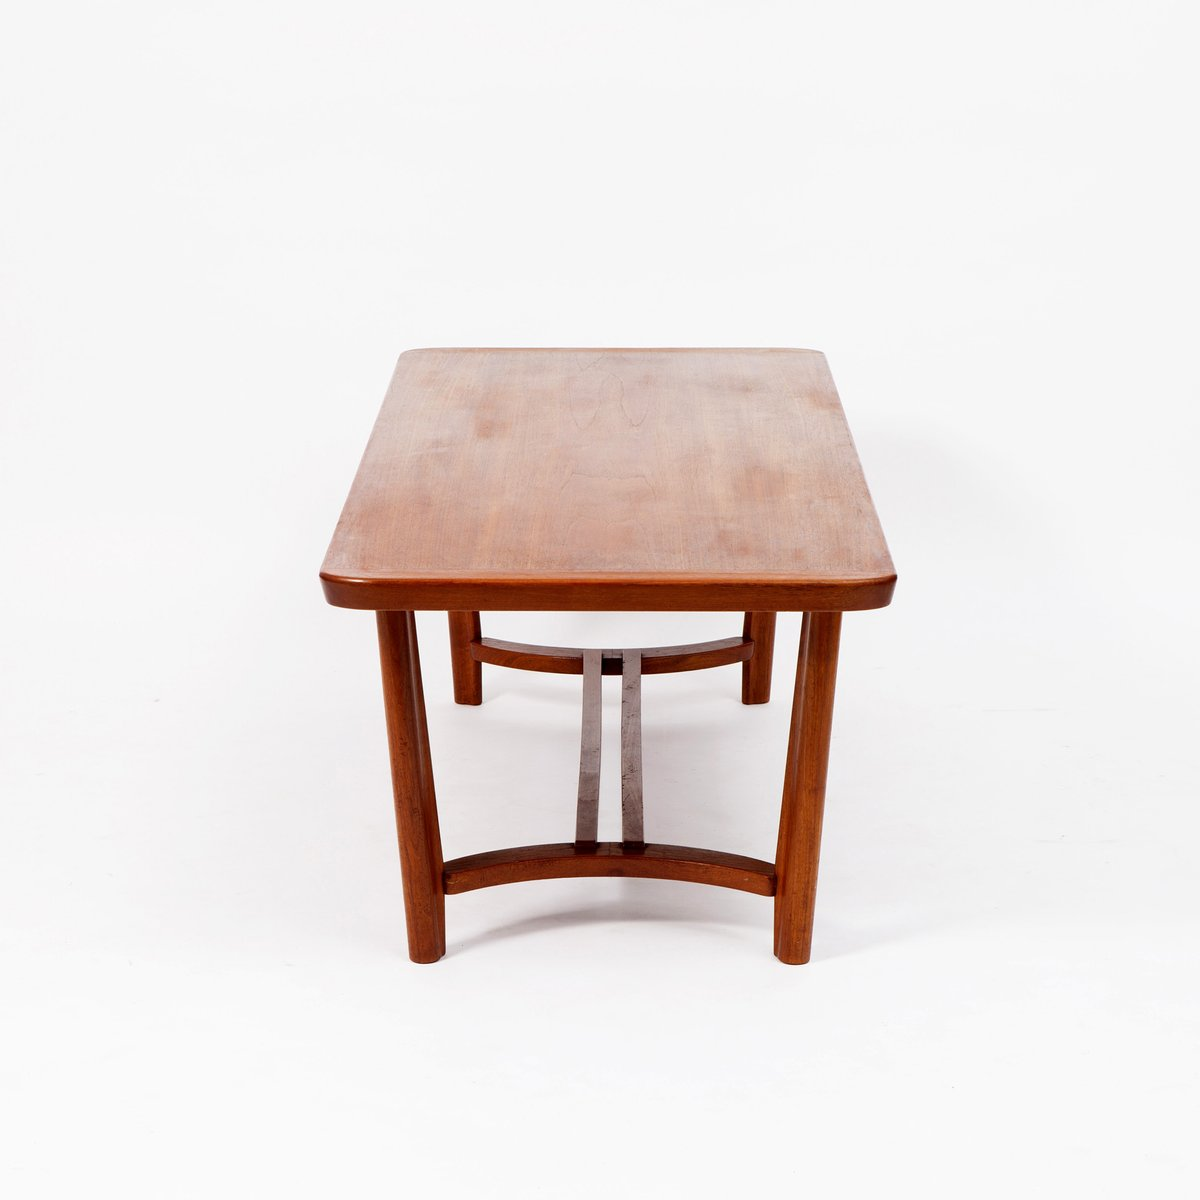 Scandinavian Teak Coffee Table: Mid-Century Scandinavian Teak Coffee Table For Sale At Pamono